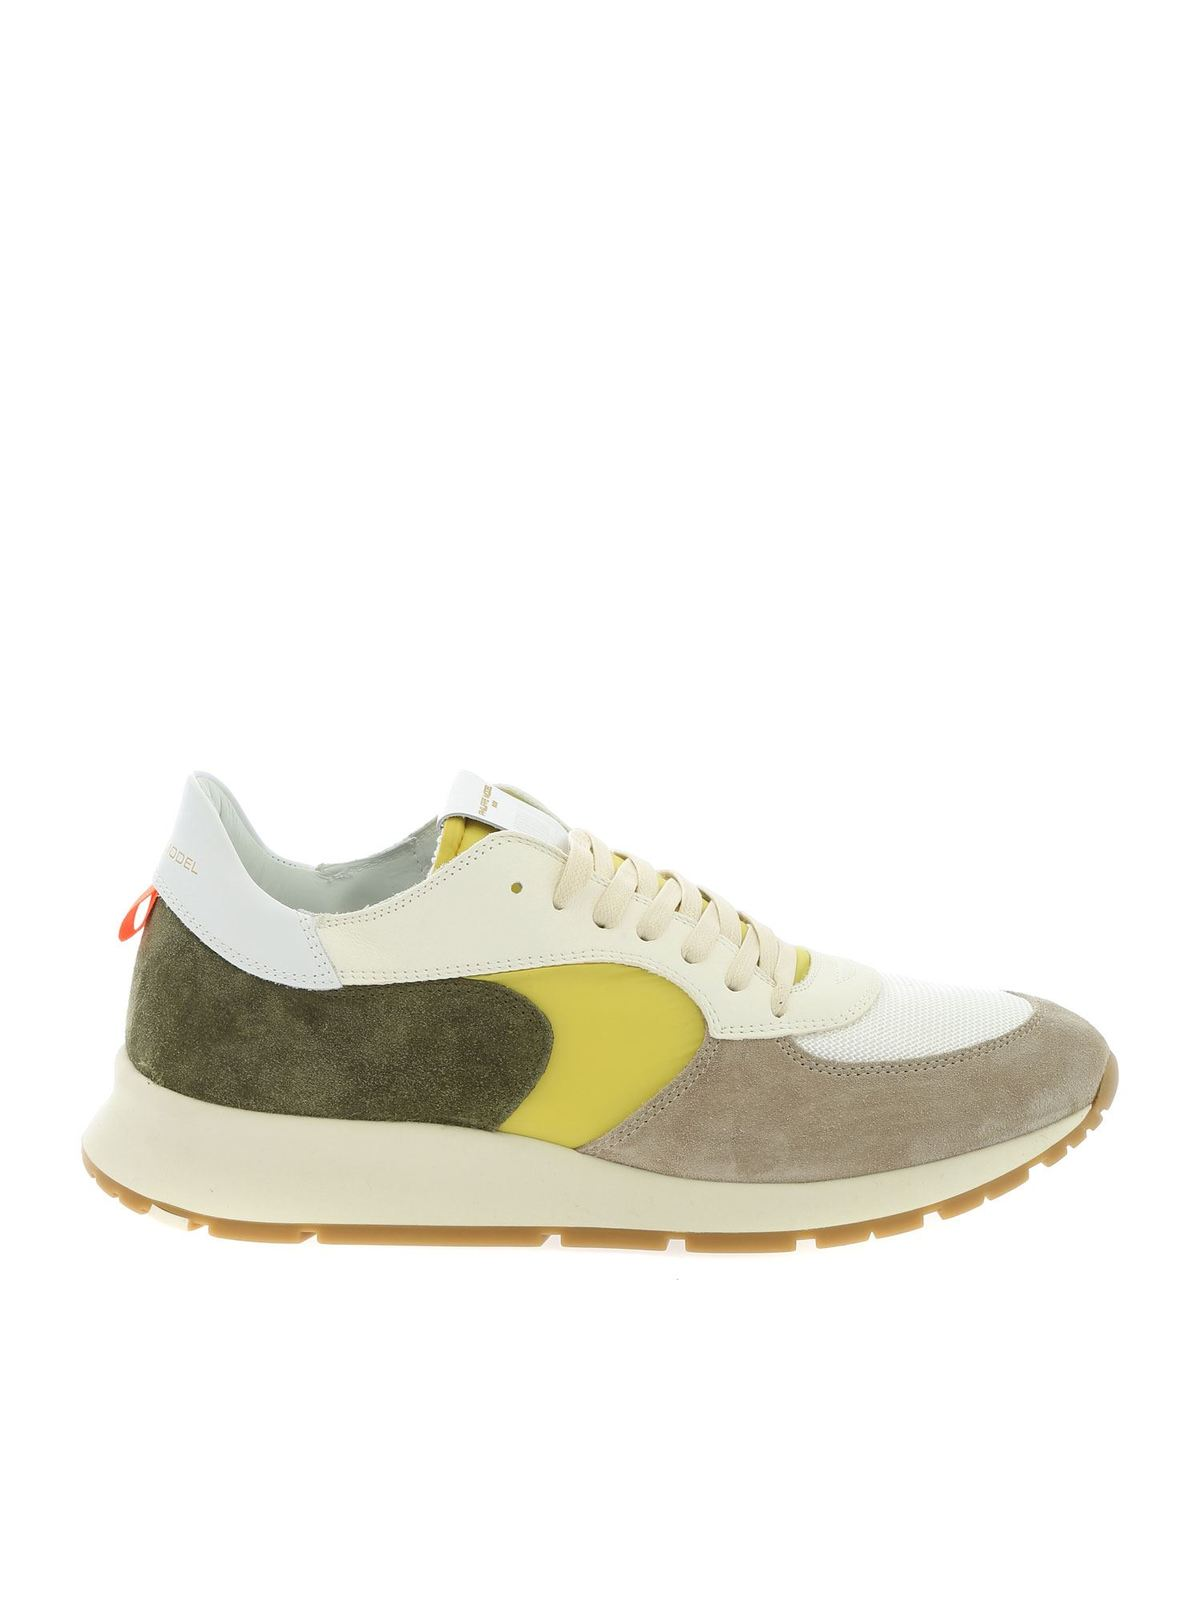 Philippe Model Sneakers MONTECARLO SNEAKERS IN GREEN YELLOW AND BEIGE